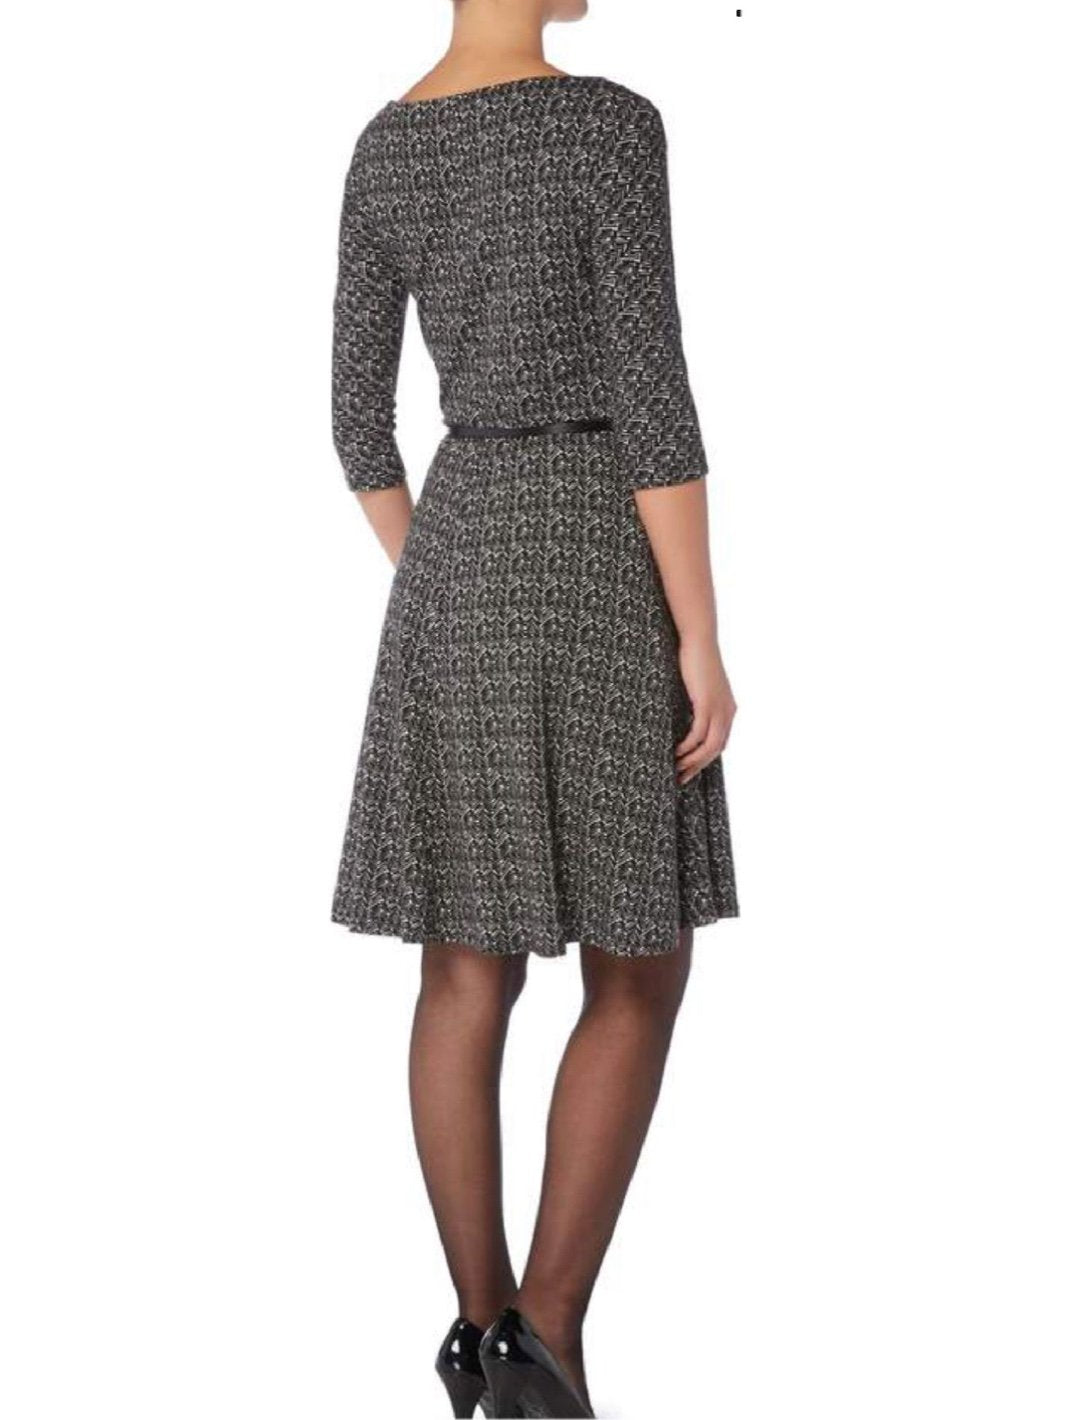 Ghiotto Jersey Print Belted Dress - The Bobby Boga